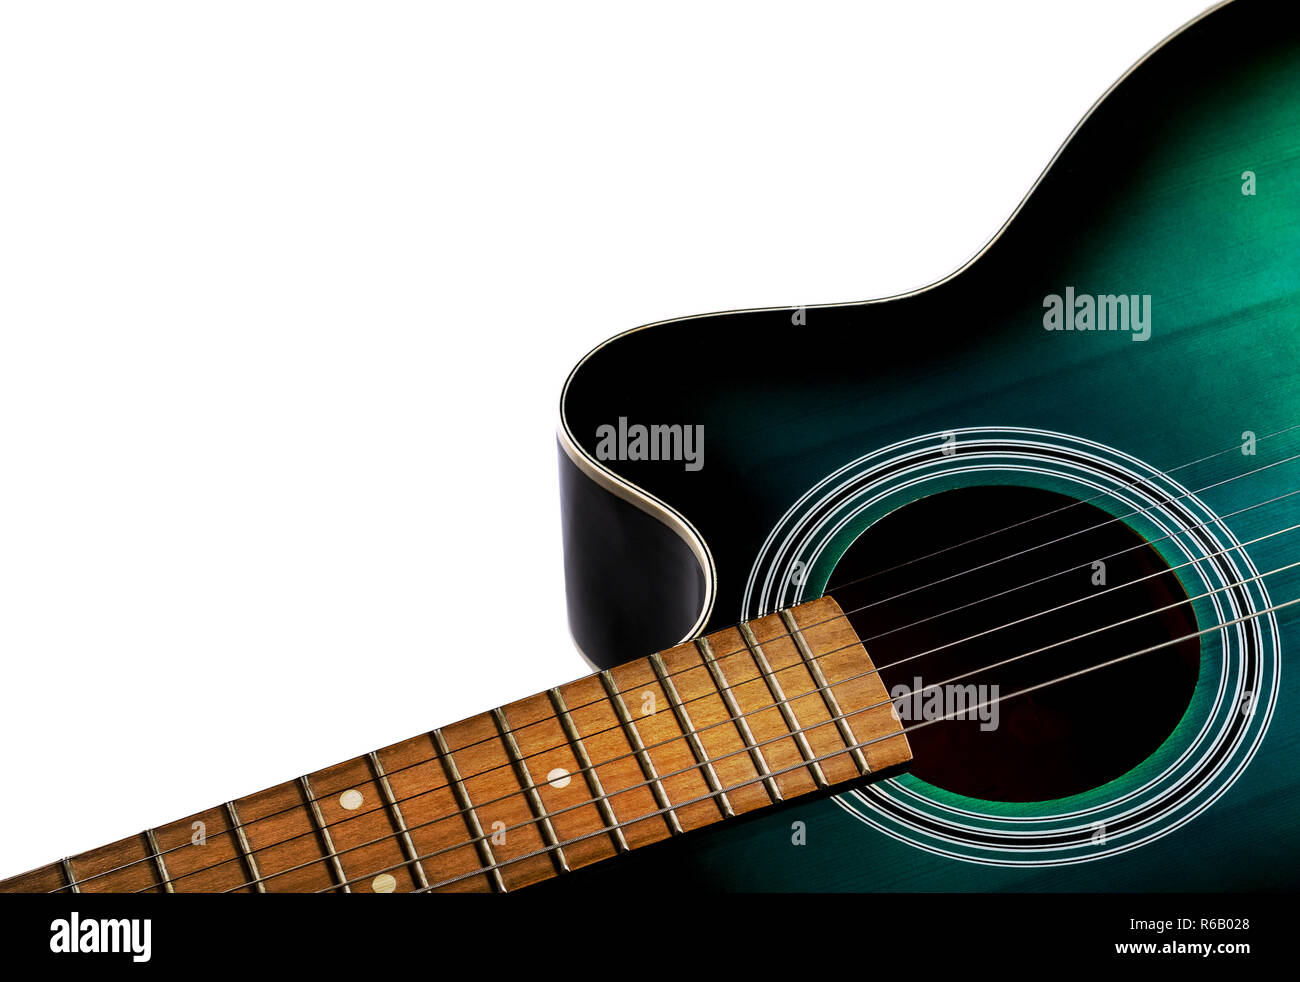 Part Of The Acoustic Guitar Black And Green Color Isolated On A